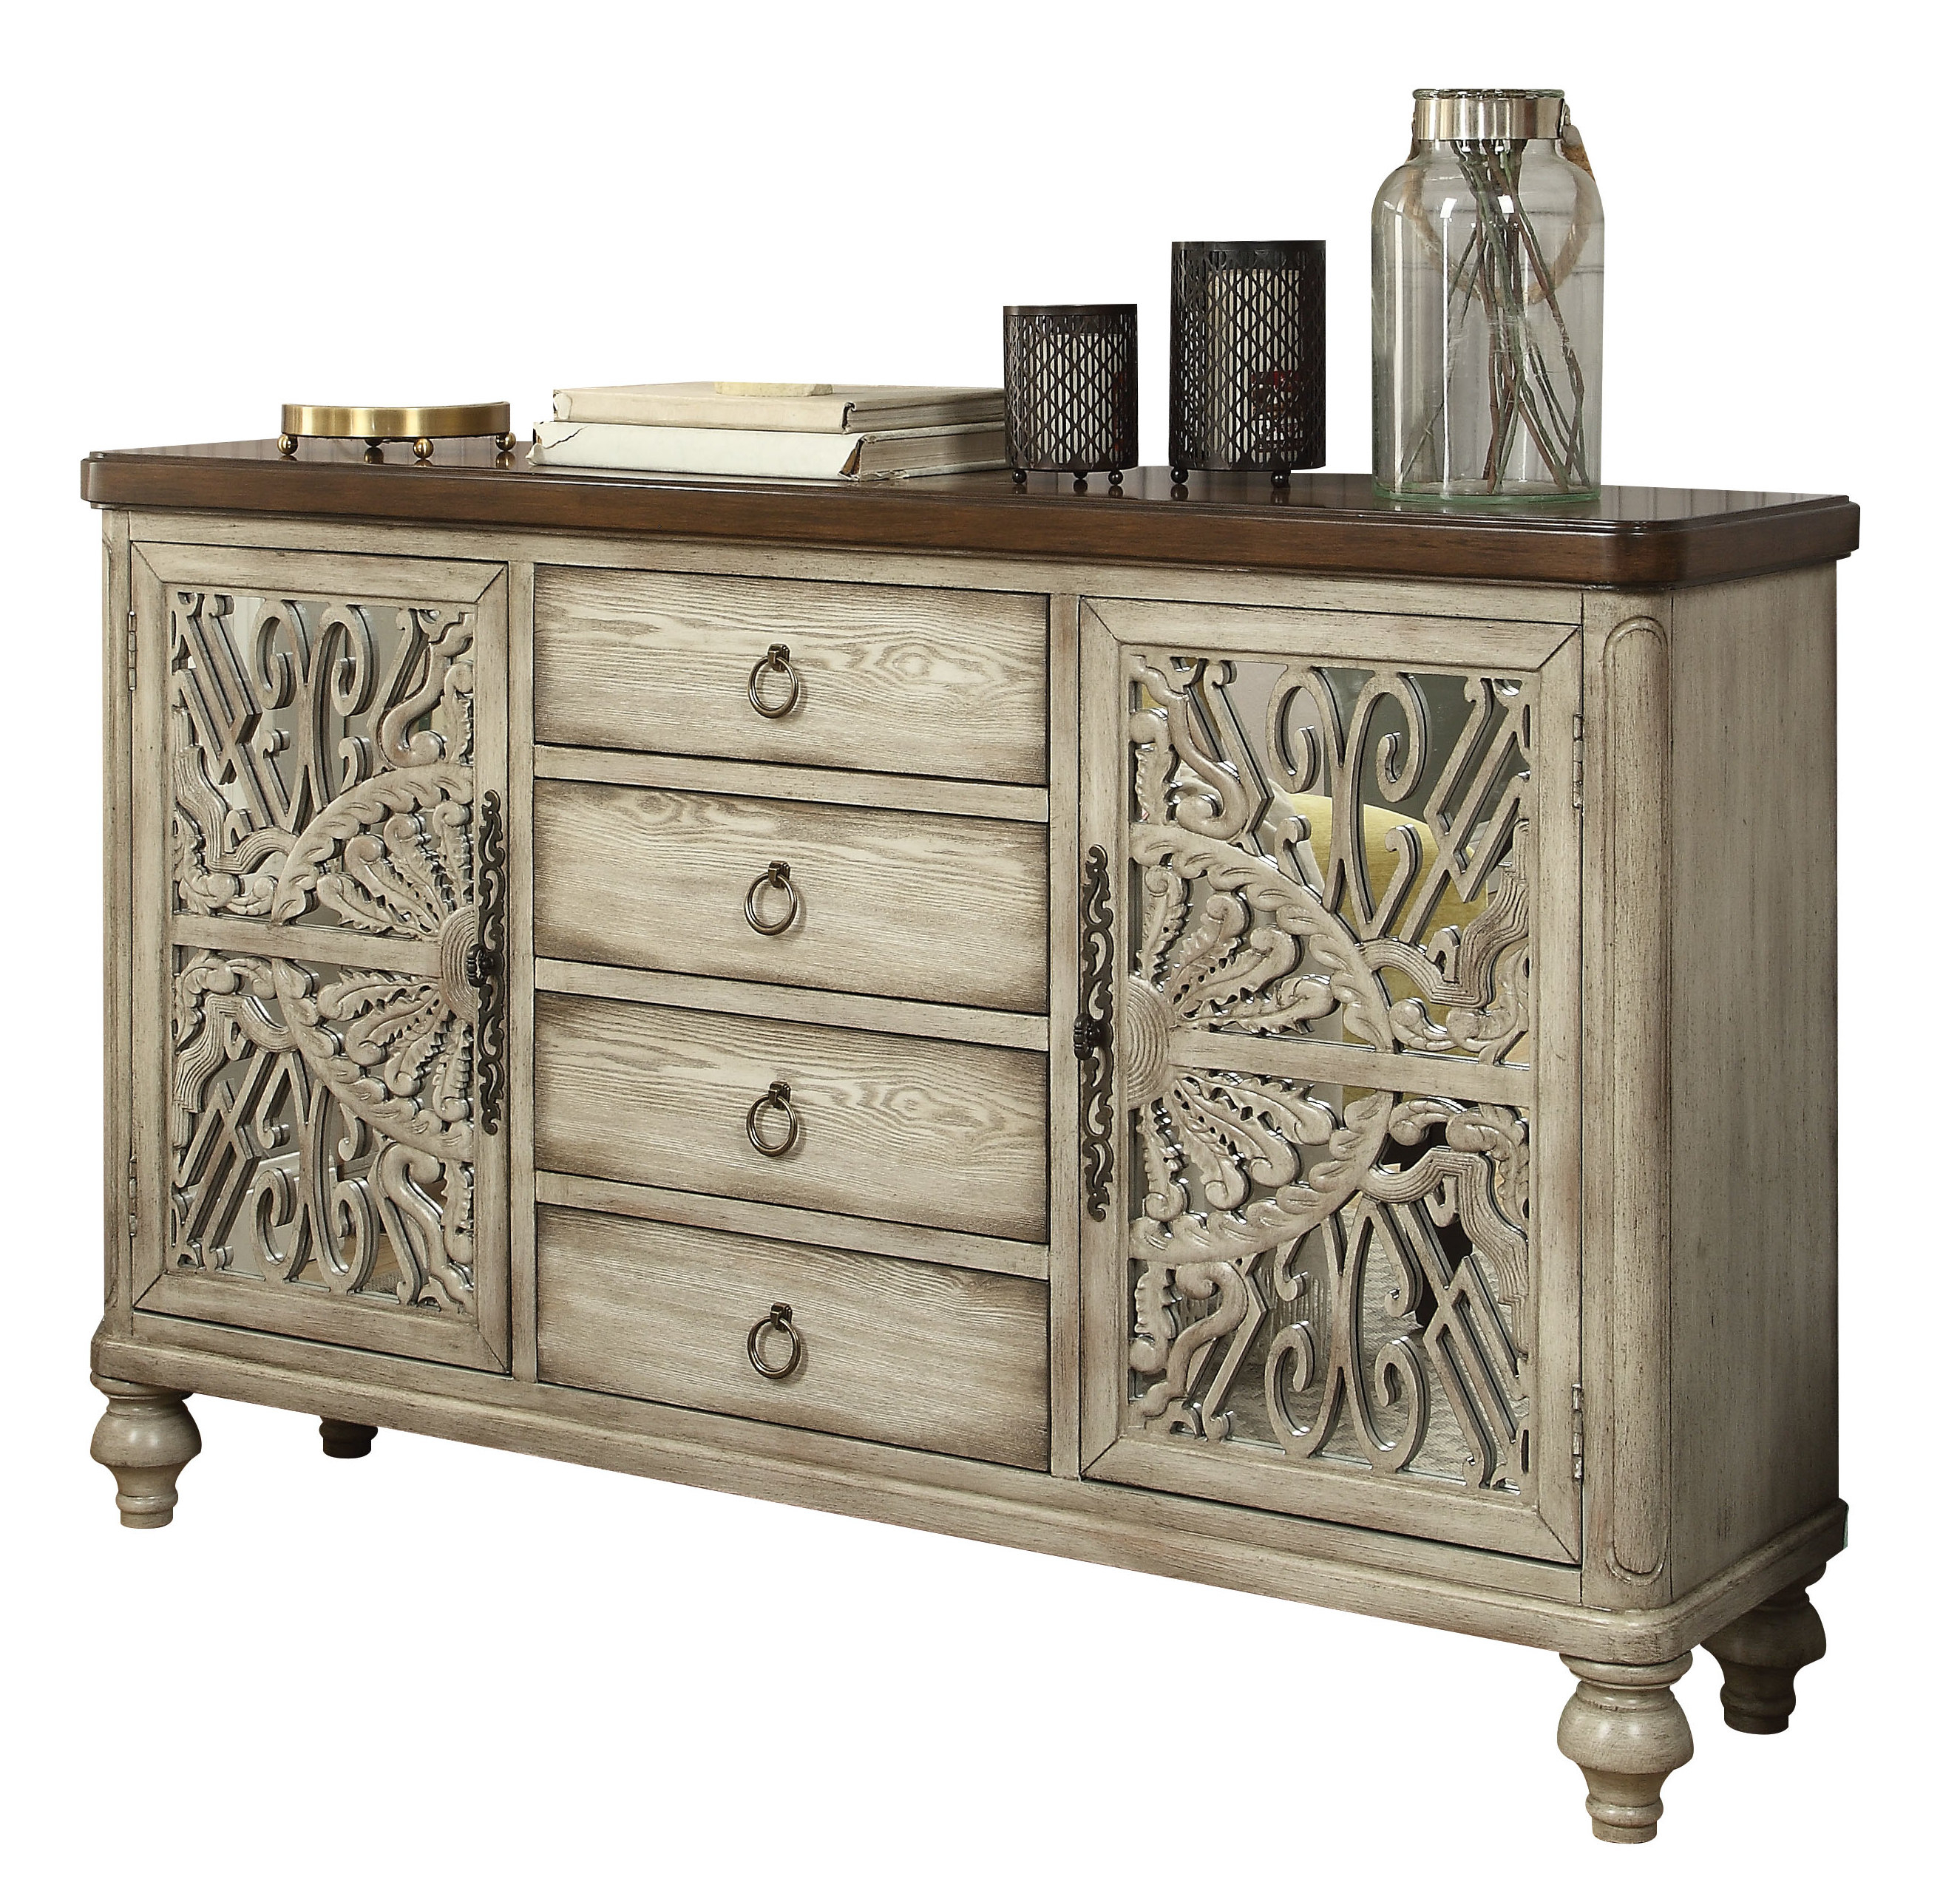 Dillen Sideboard Pertaining To Most Recent Dillen Sideboards (#2 of 20)